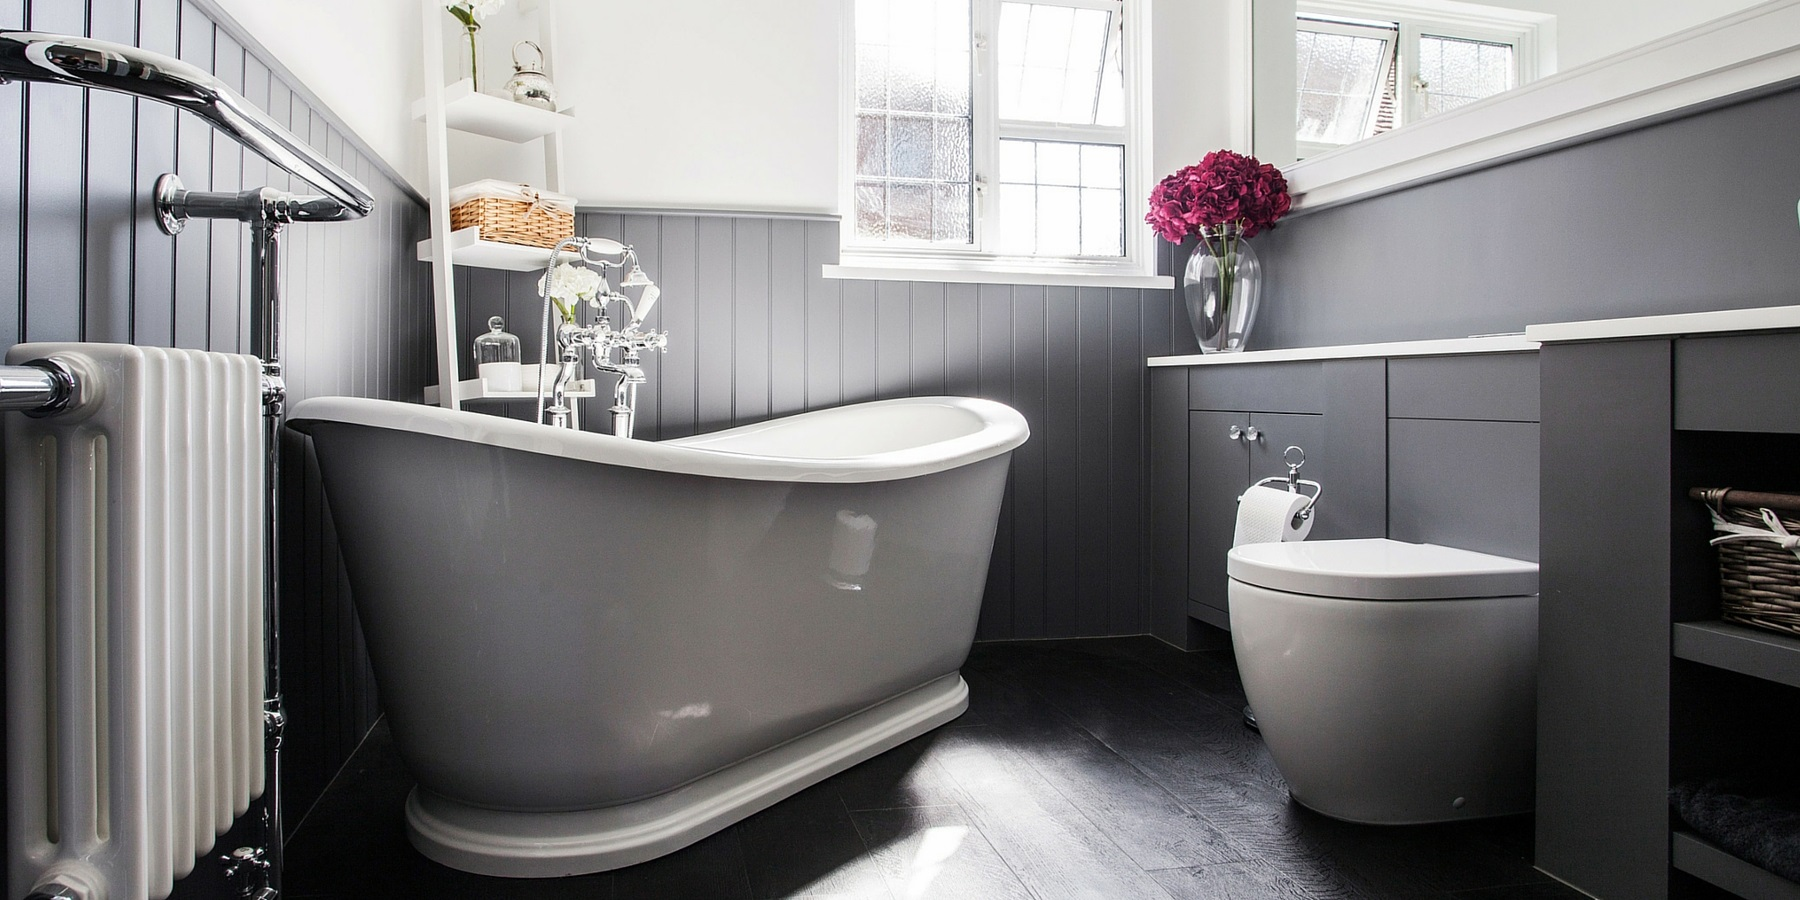 Bespoke Hotel Style Bathroom Design - Burlanes handmade boutique bathroom furniture with beautiful roll top freestanding bath and shaker wall panelling.